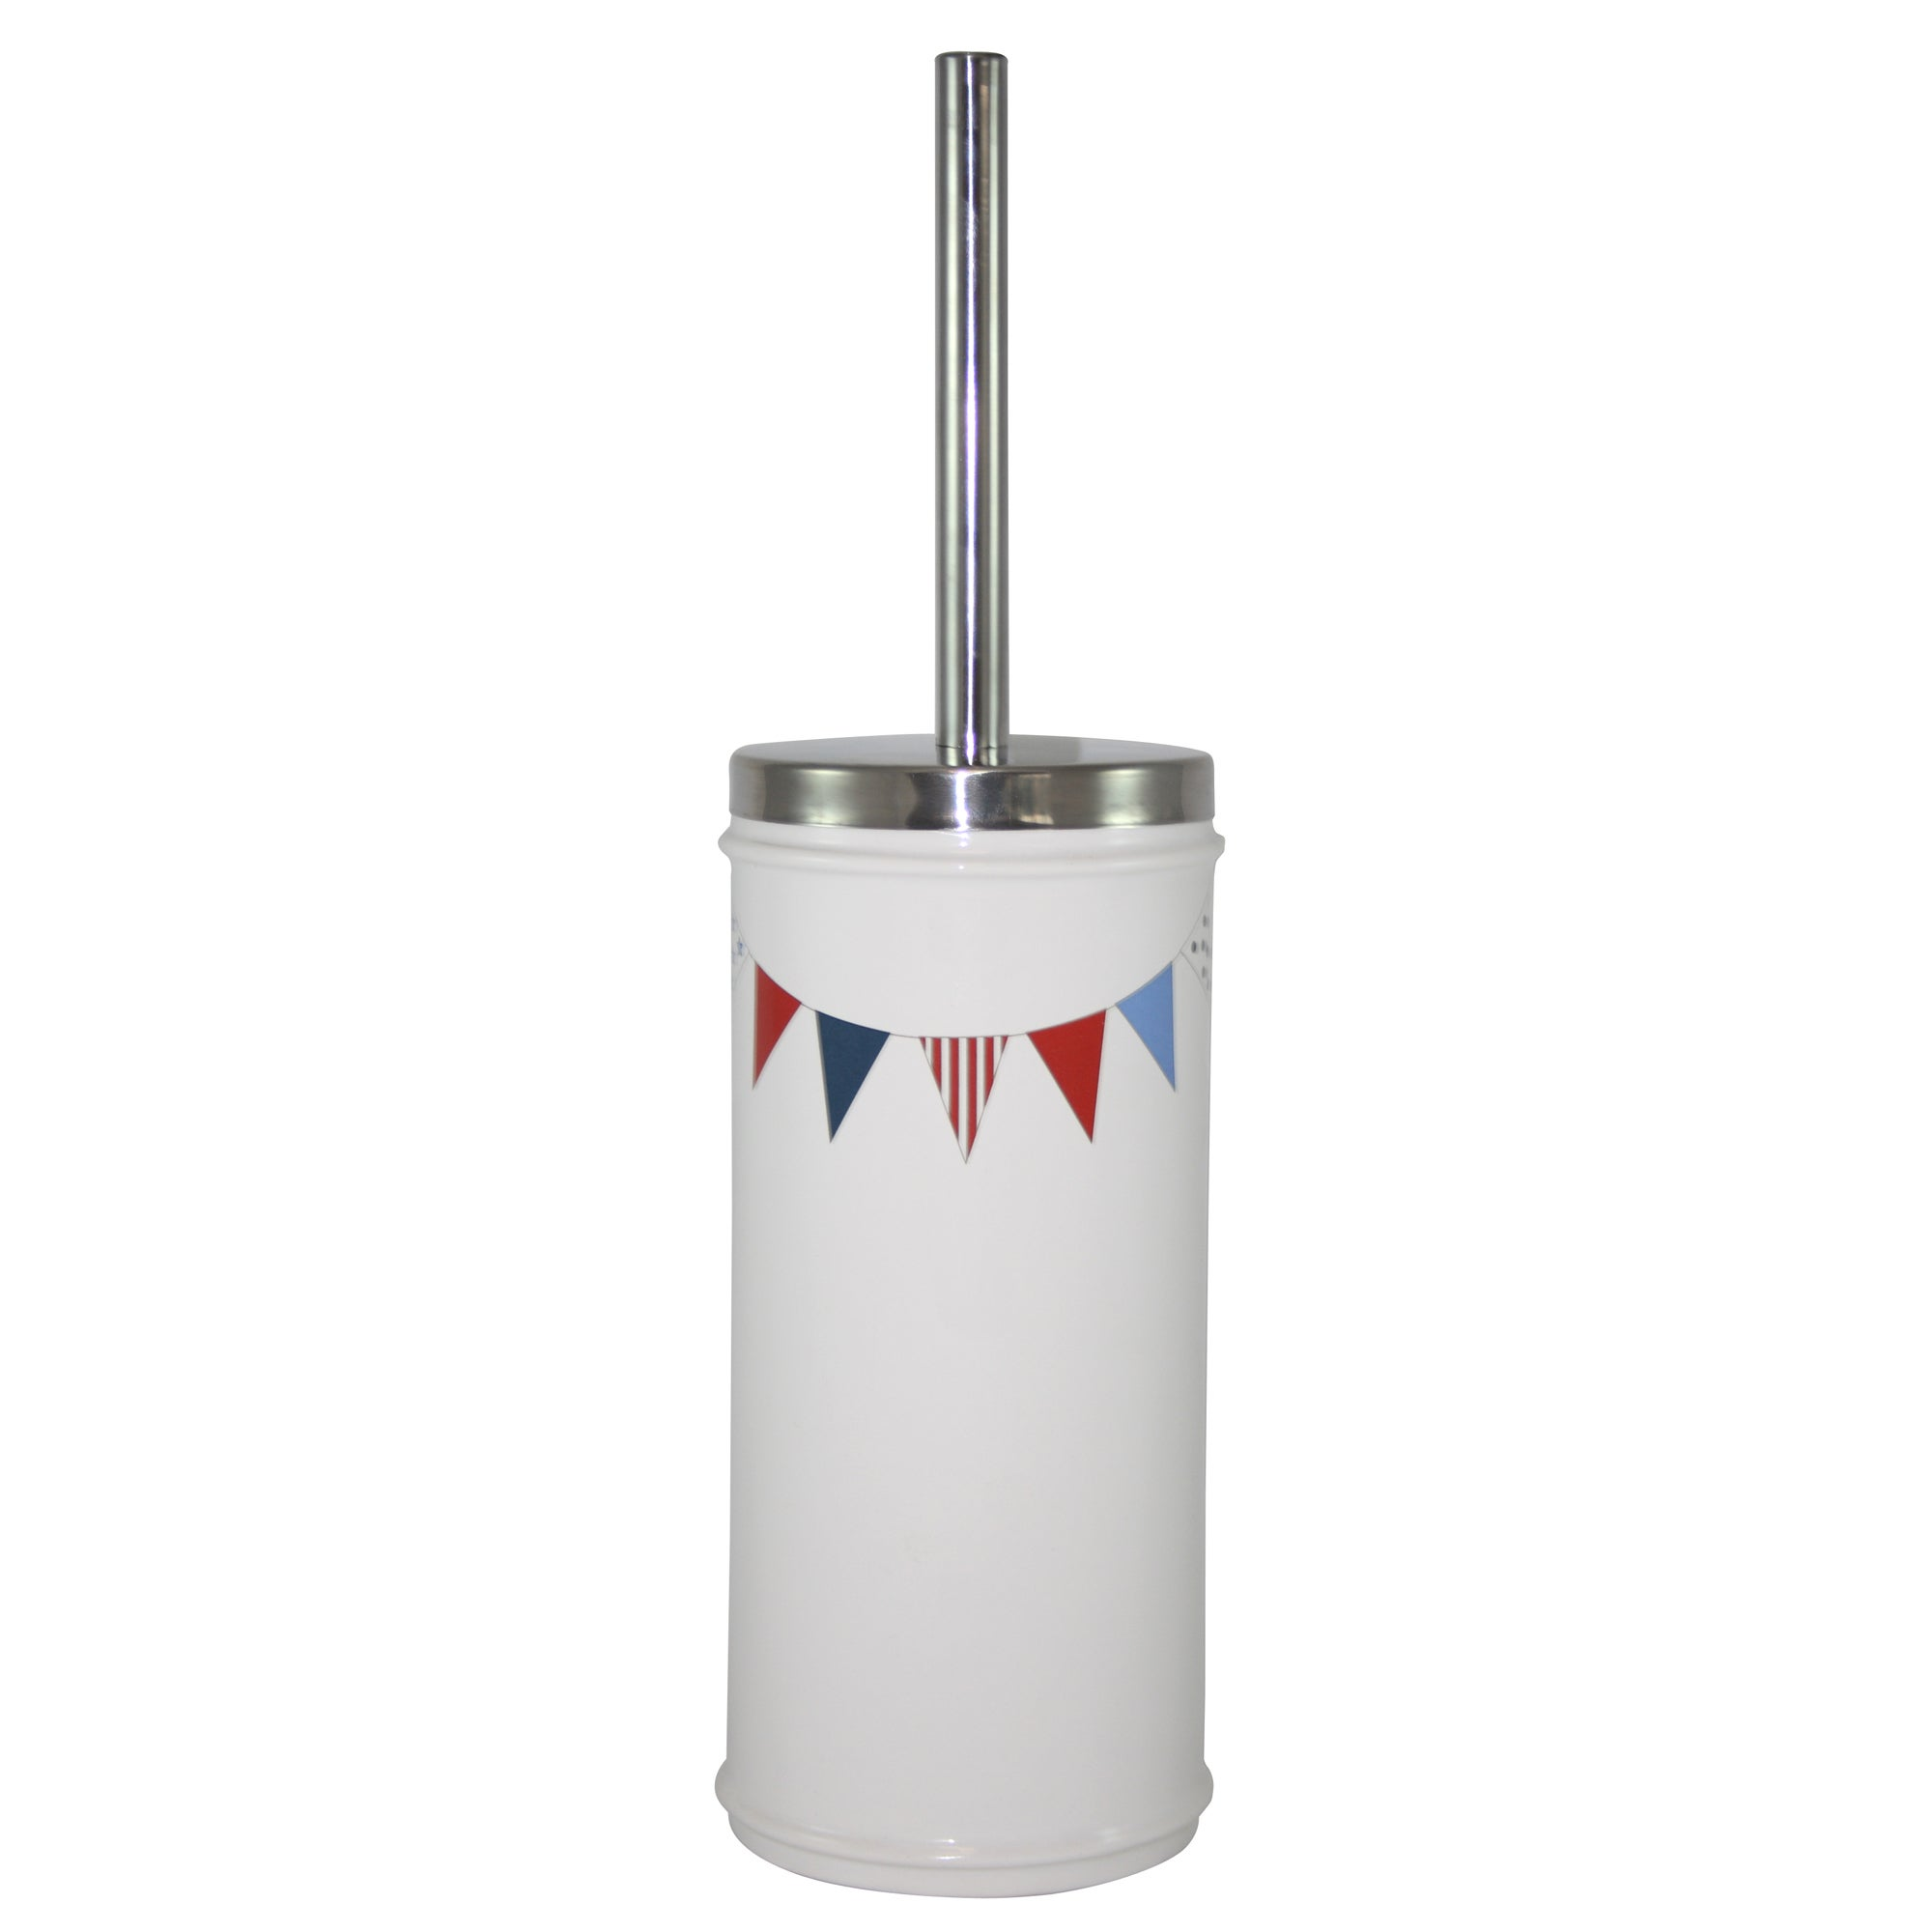 Bunting Collection Toilet Brush Holder